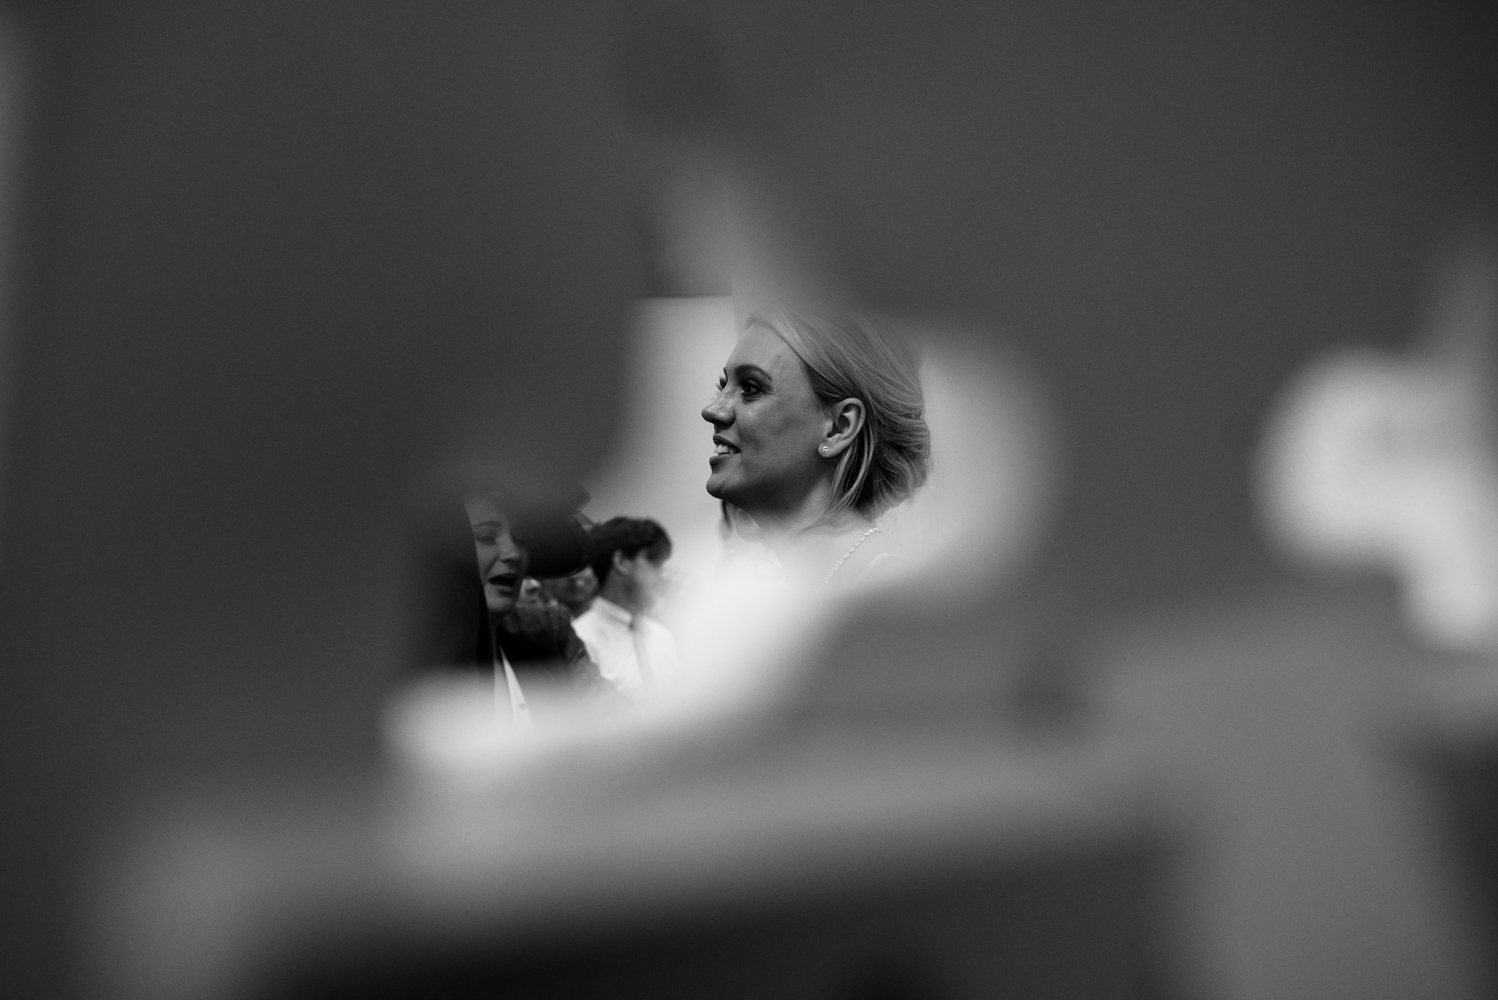 A black and white photo of the bride taken though a gap during the line up